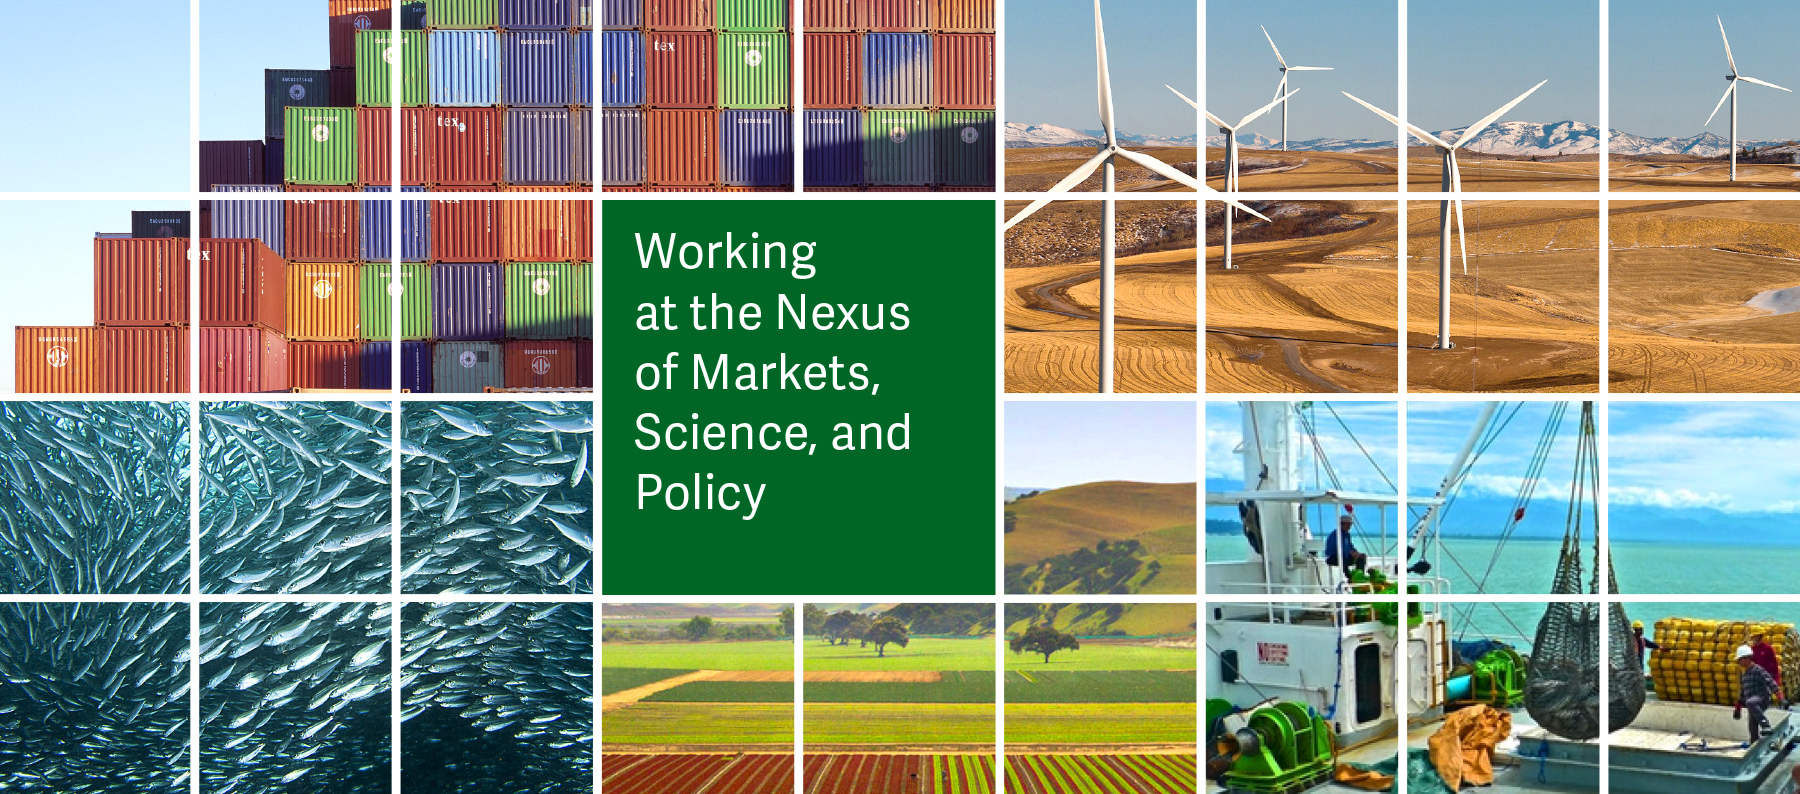 Working at the Nexus of Markets, Science, and Policy banner